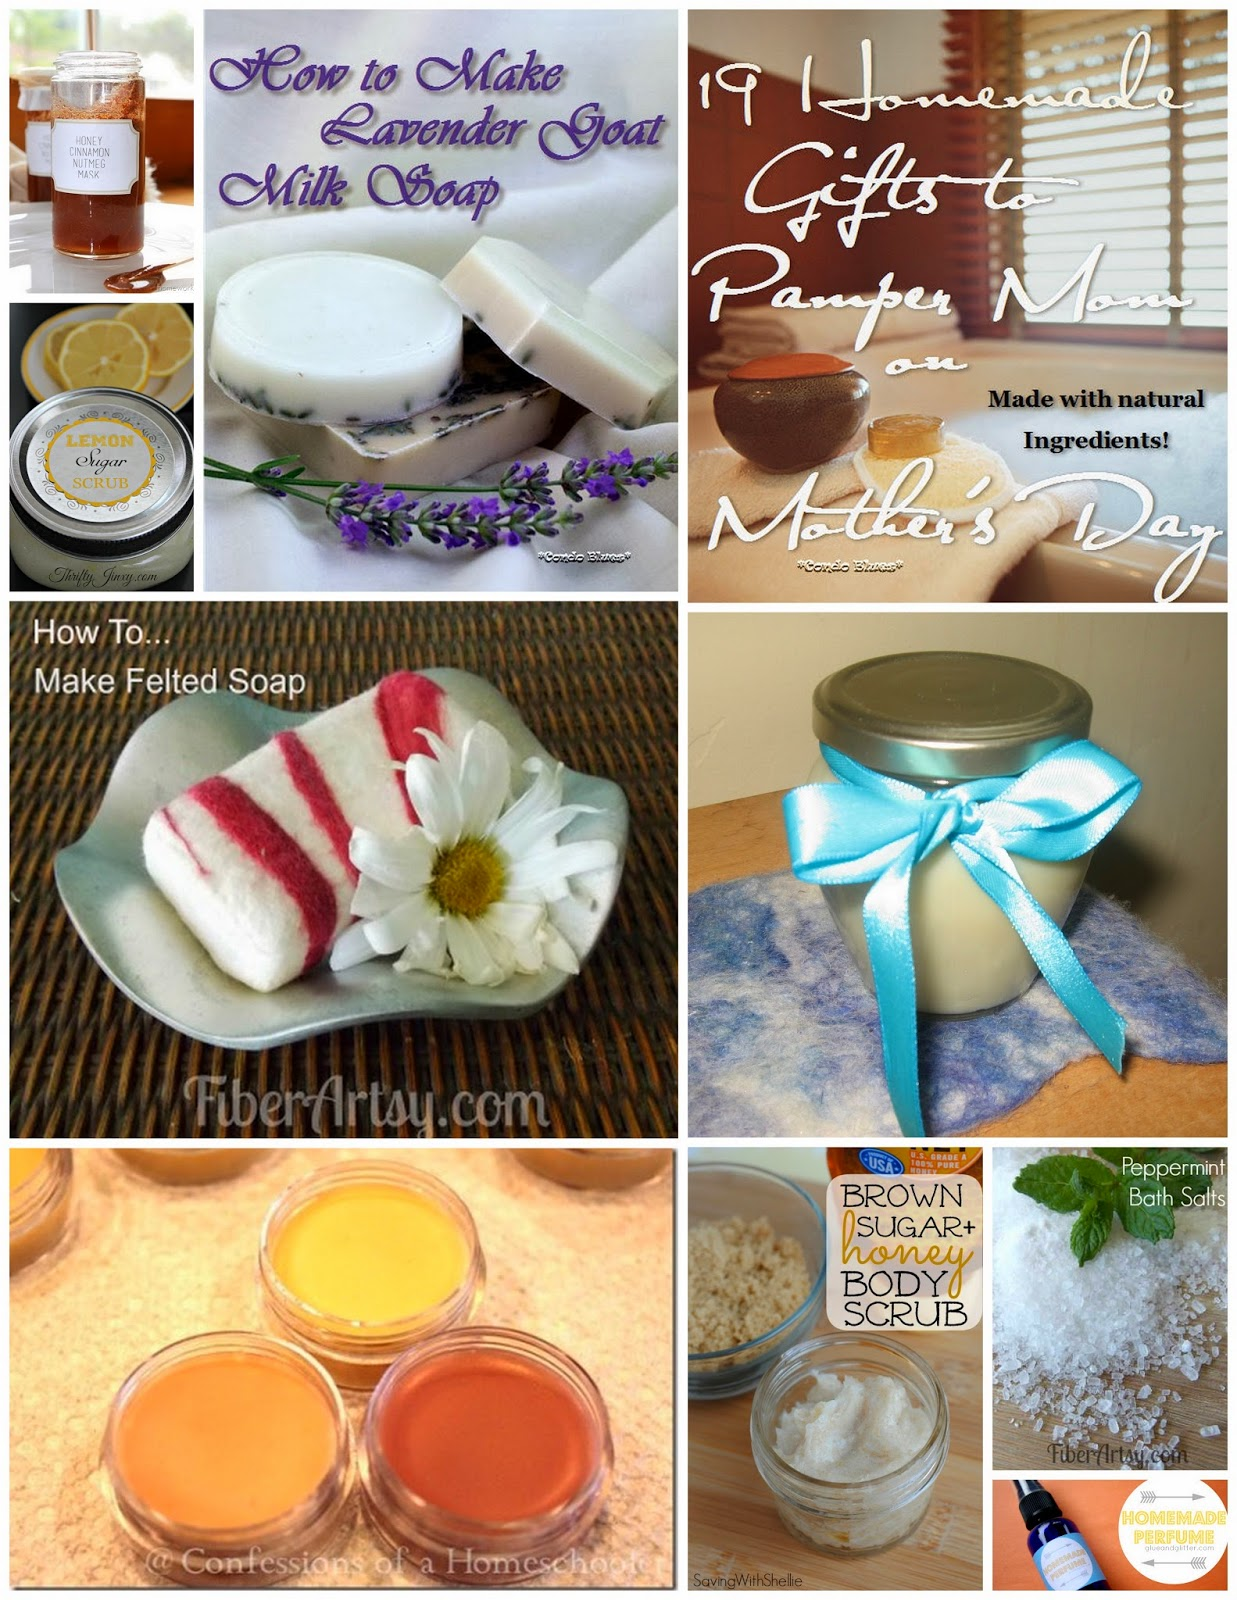 Condo Blues 19 Homemade Gift Ideas To Pamper Mom On